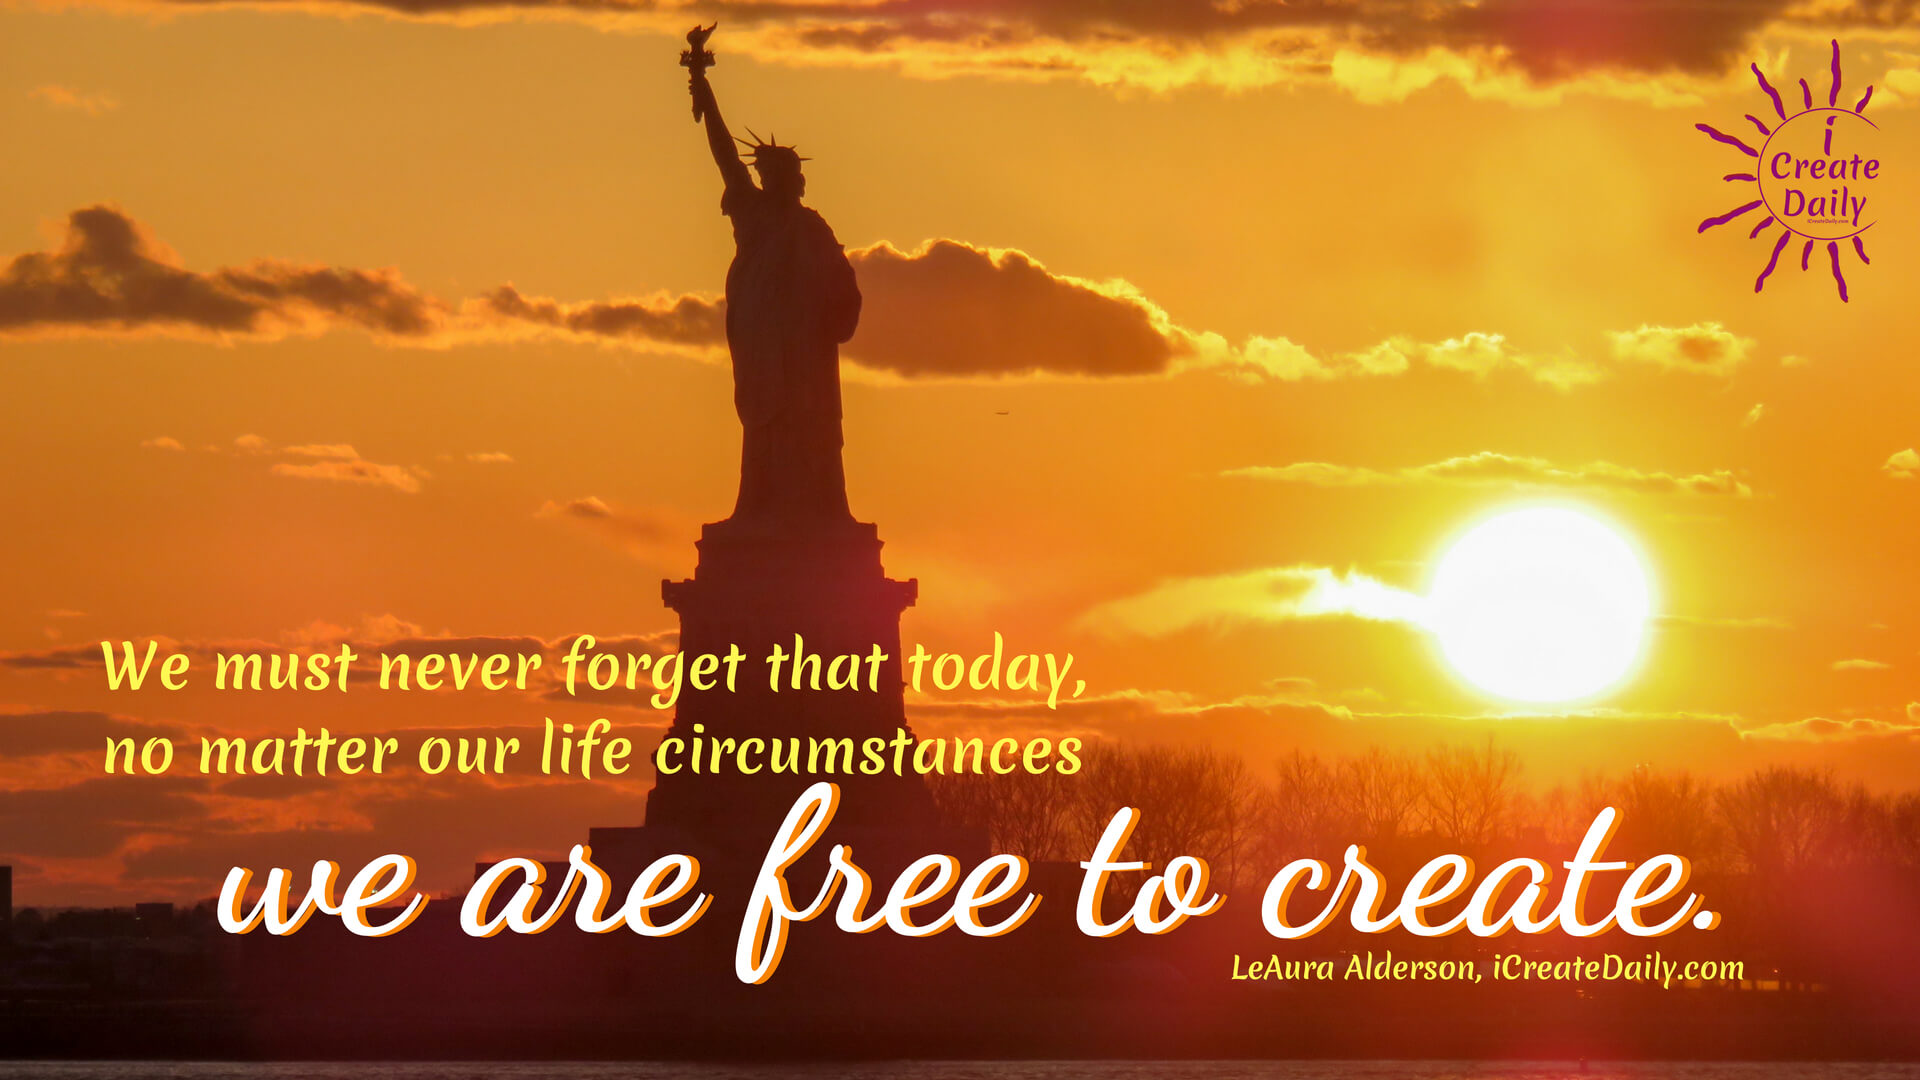 Freedom quotes, free to create